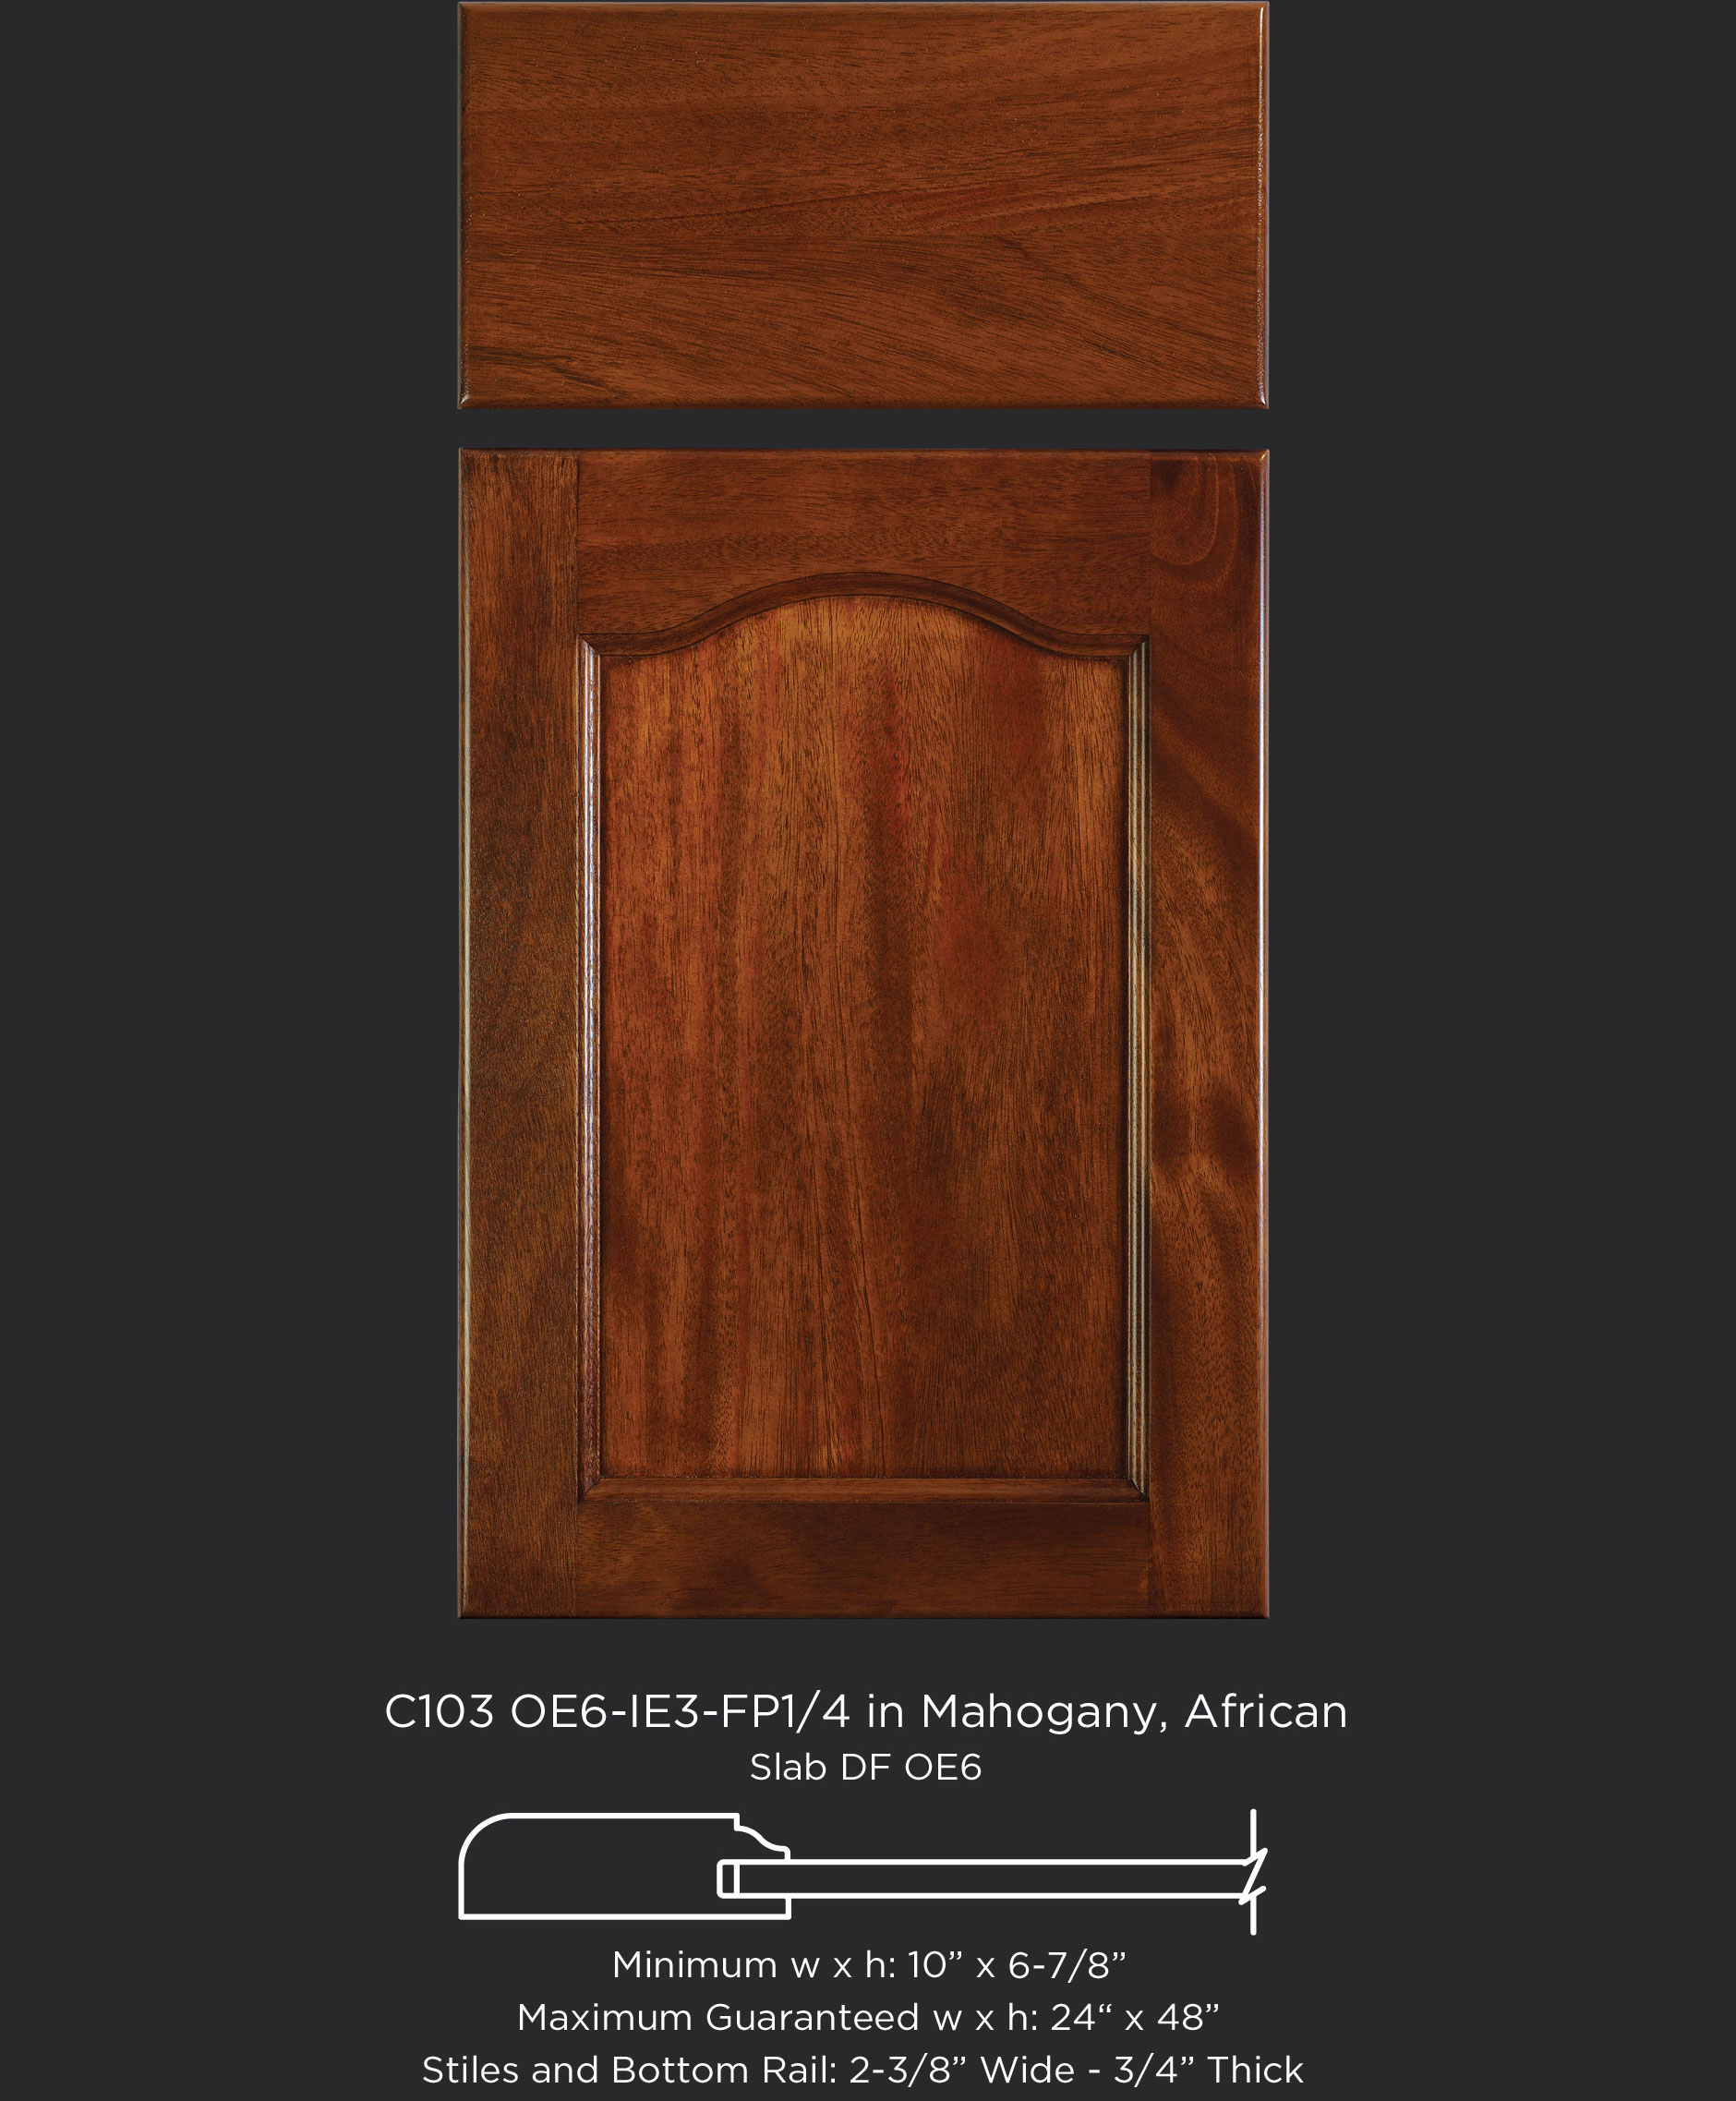 Cope and Stick Cabinet Door C103-OE6-IE3-FP1/4 in Mahogany, African and slab drawer front with OE6